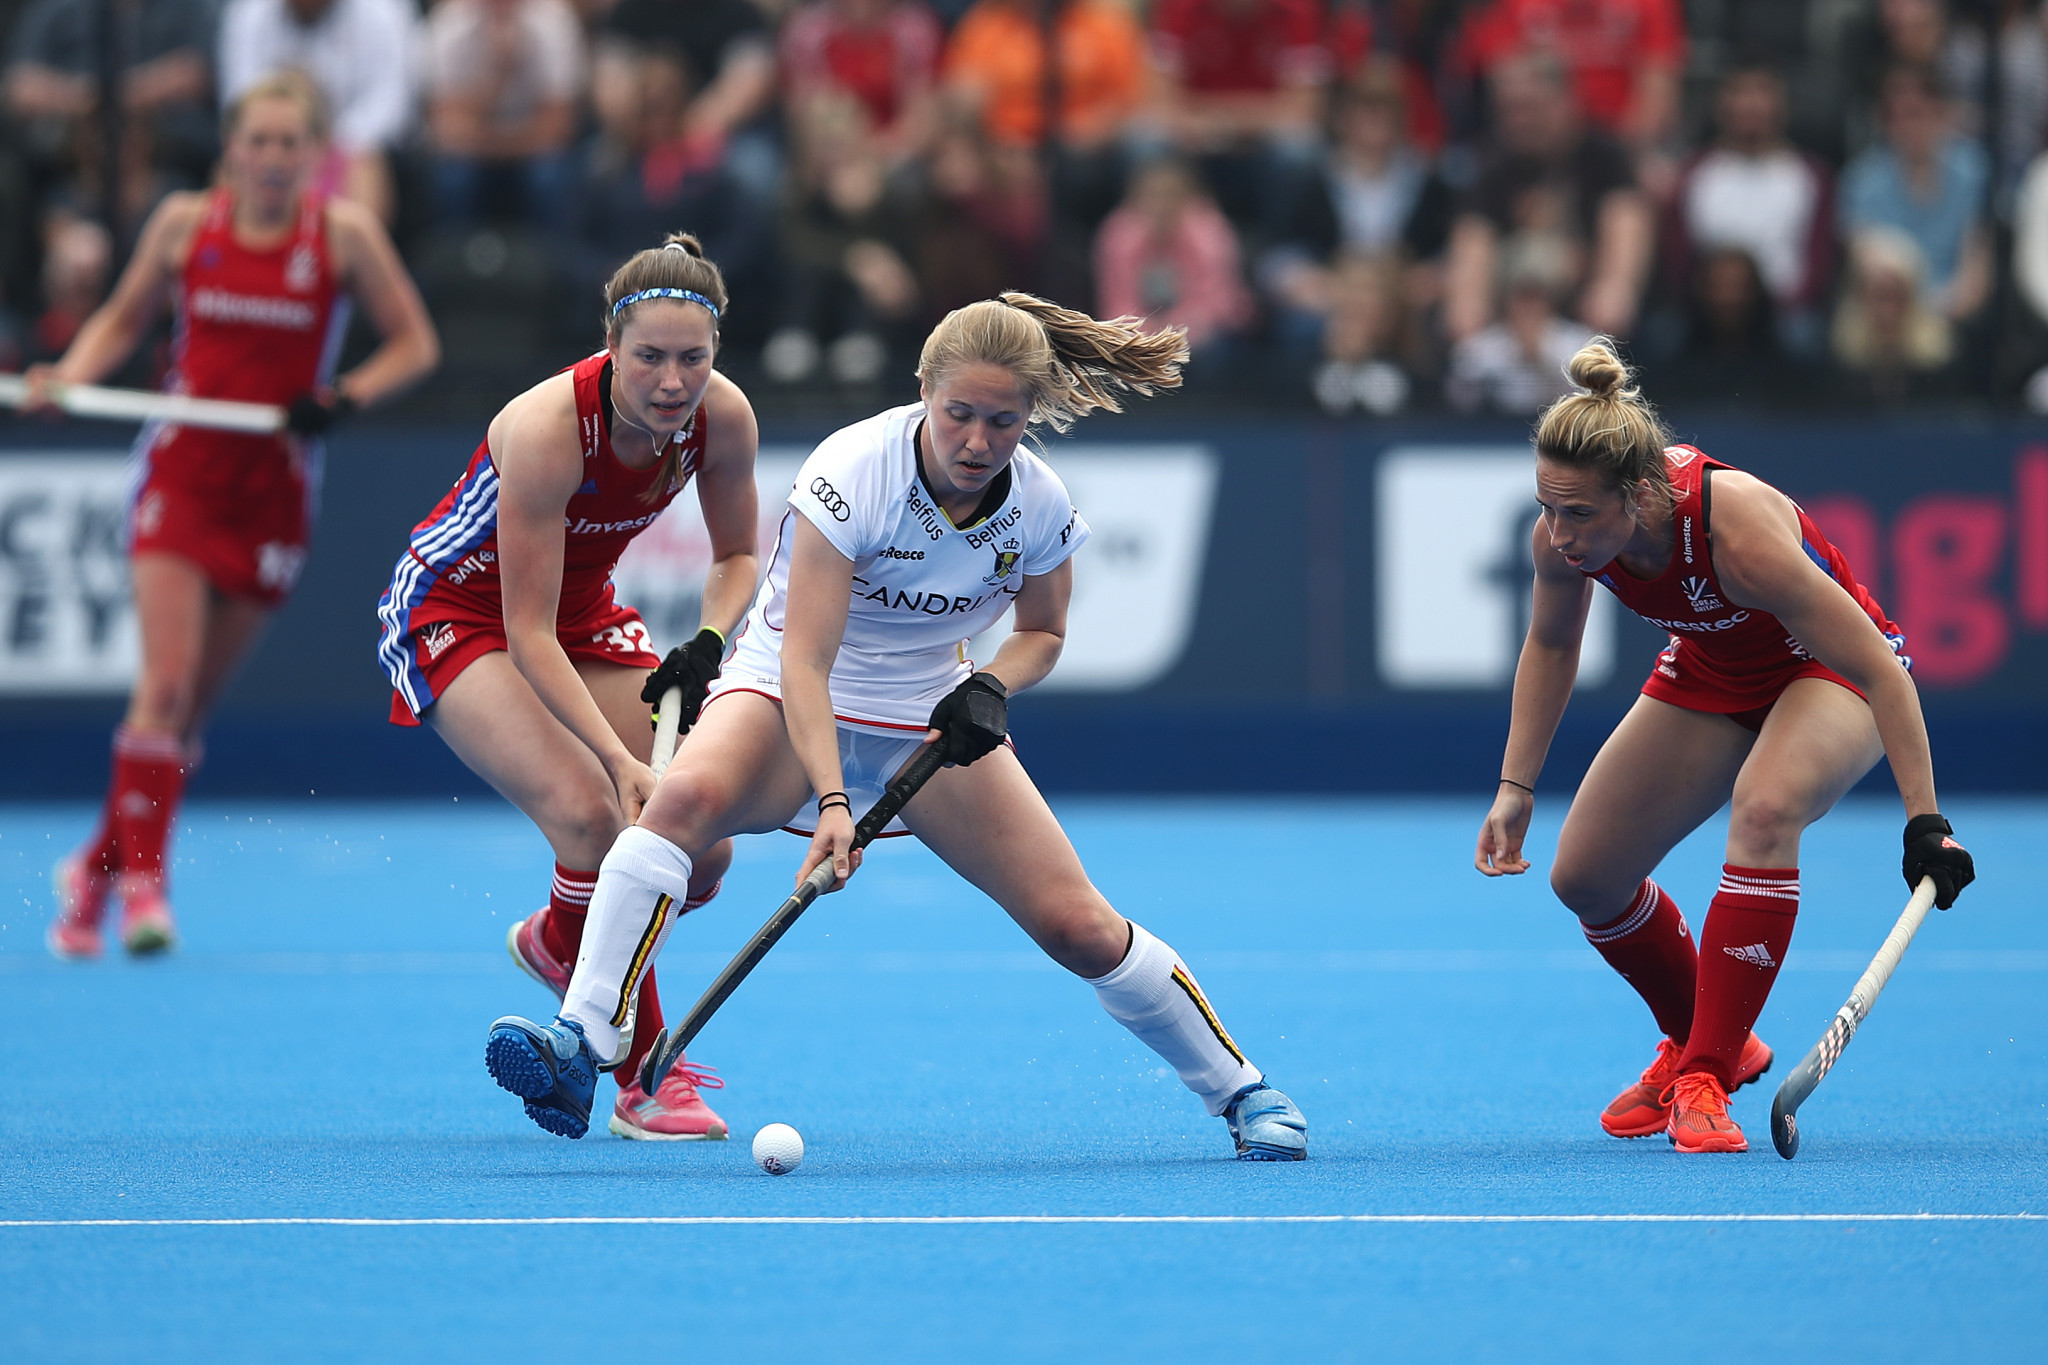 Belgium and Britain share victories in FIH Hockey Pro League